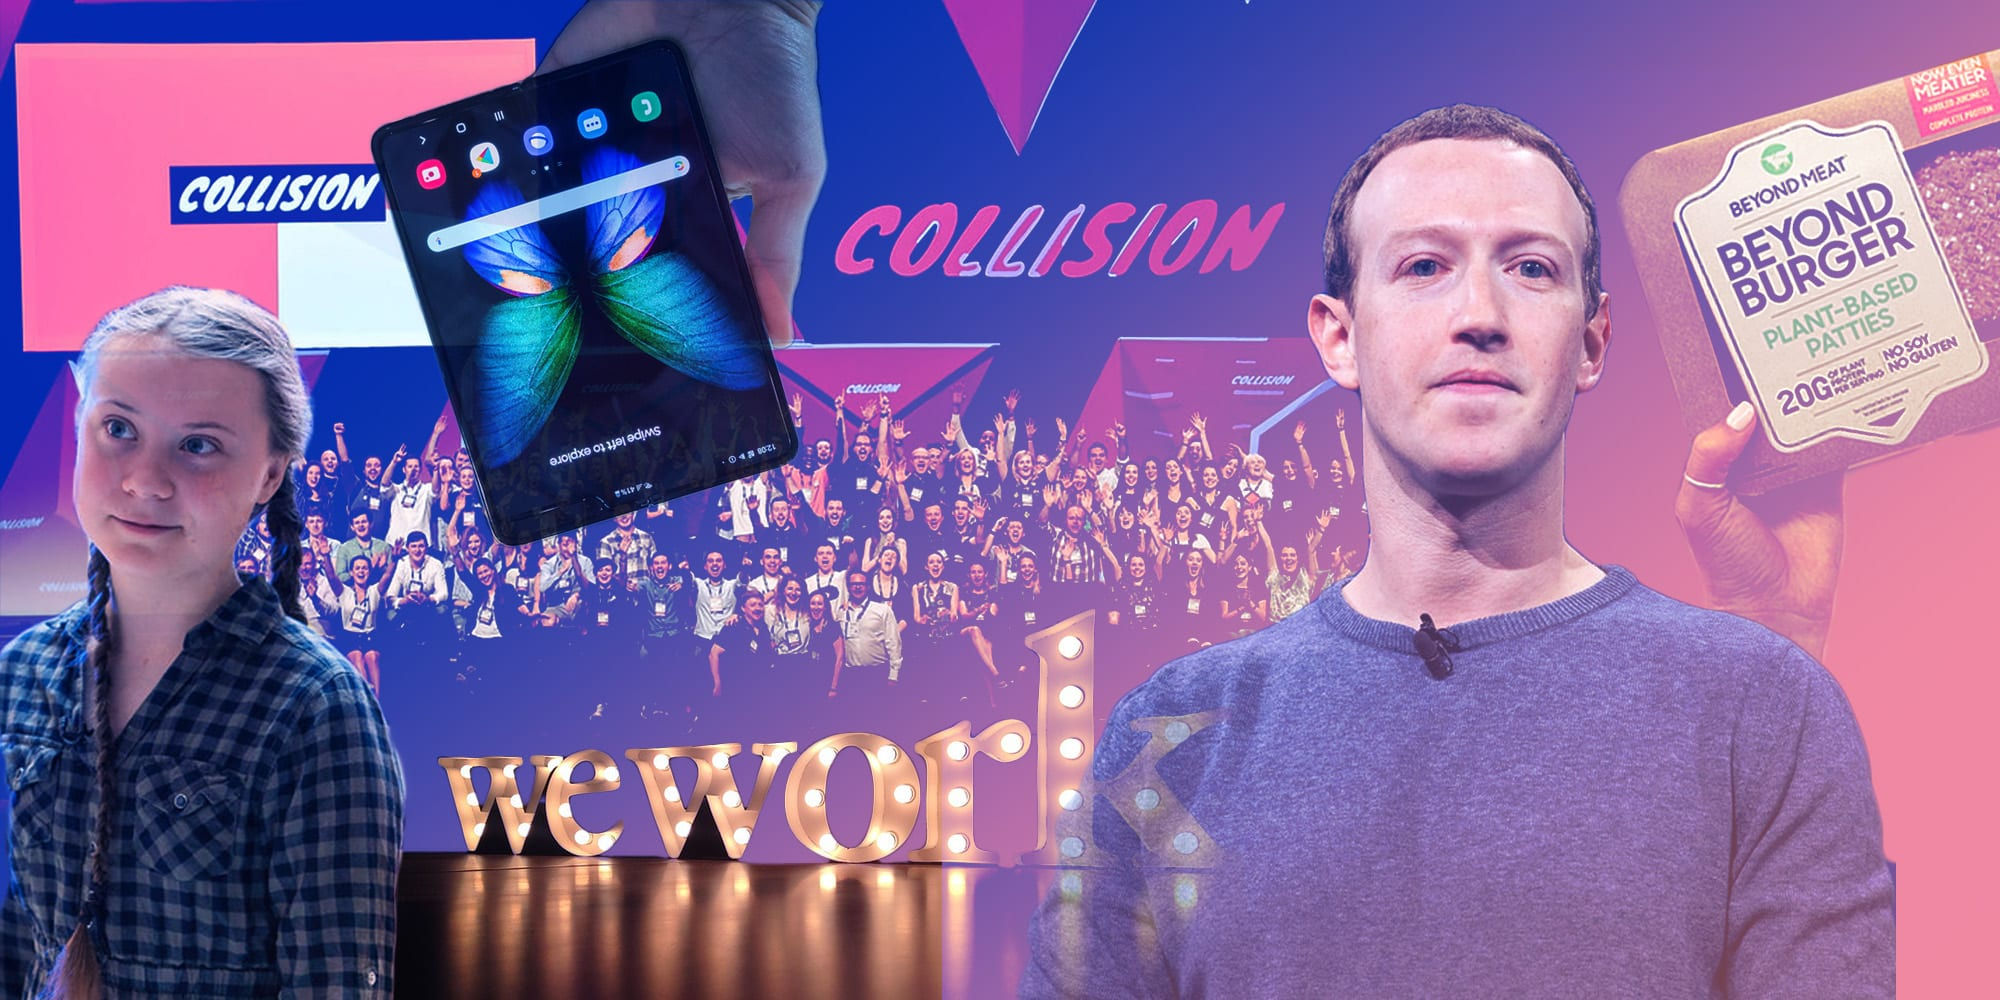 The 10 biggest tech stories of 2019